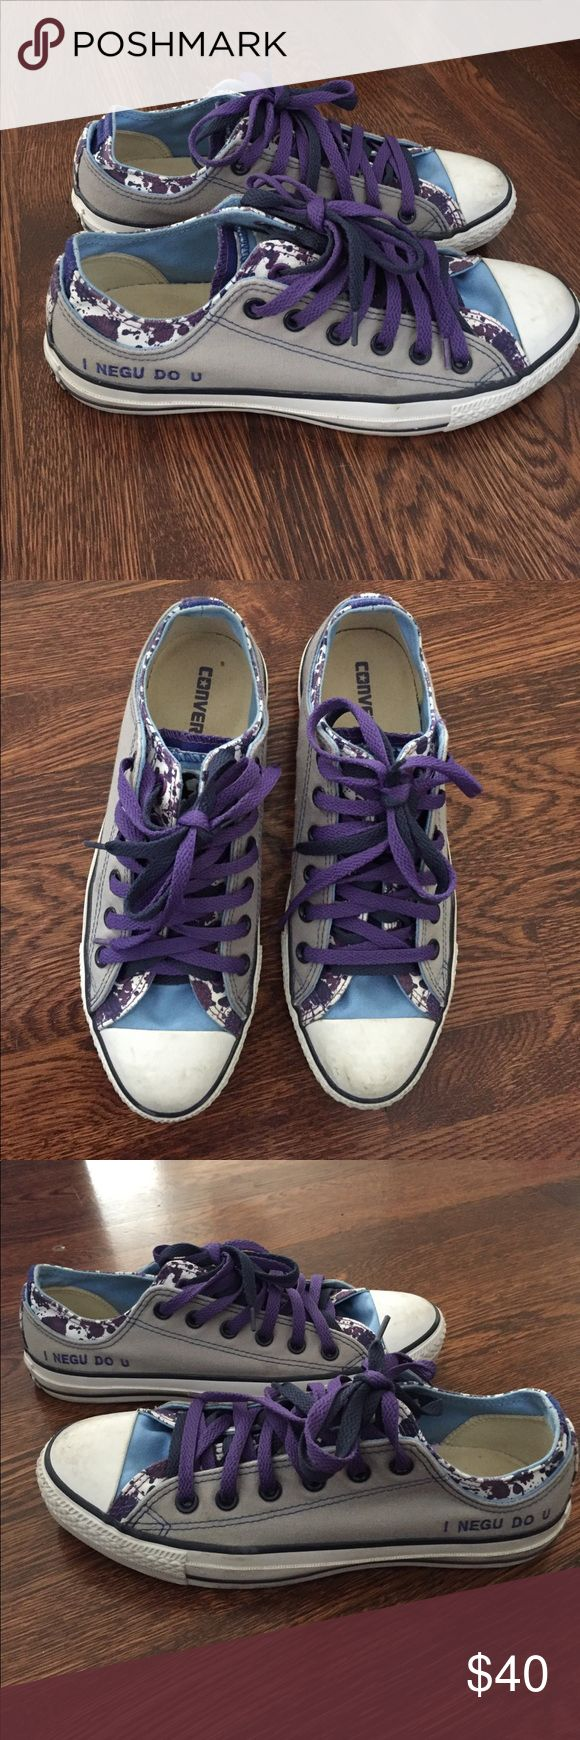 """Custom Converse All Stars-Size 7.5 M/ W 9.5 Custom Made Converse AllStars Men's 7 1/2 or women's 9 1/2 Theme is """"I NEGU Do You?""""  NEGU stands for Never Ever Give Up Shoes have barely been worn Converse Shoes Sneakers"""